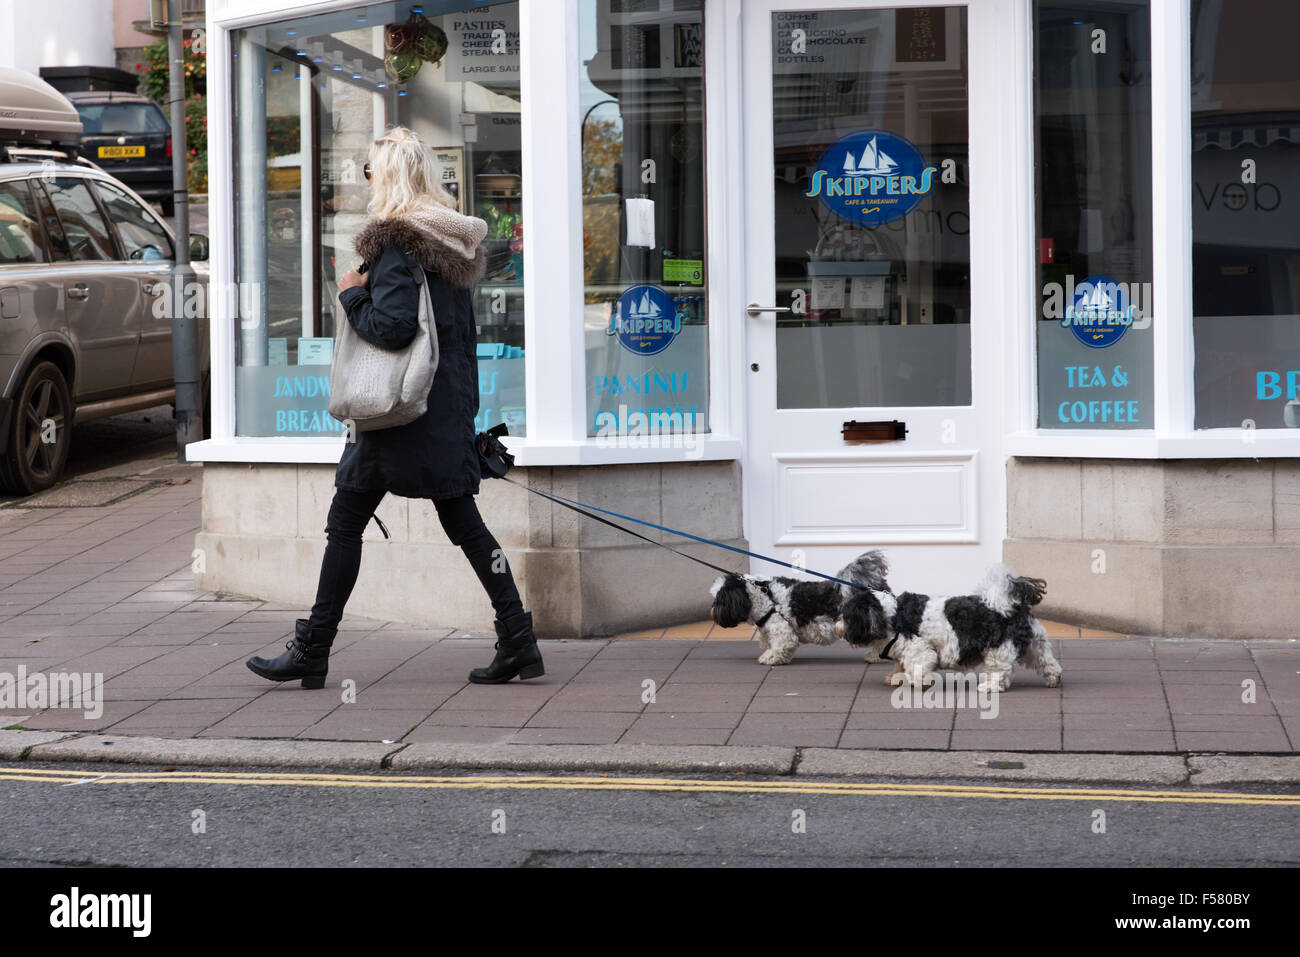 Blonde woman holding a large designer handbag striding along the street with her two precious dogs on leads walking - Stock Image